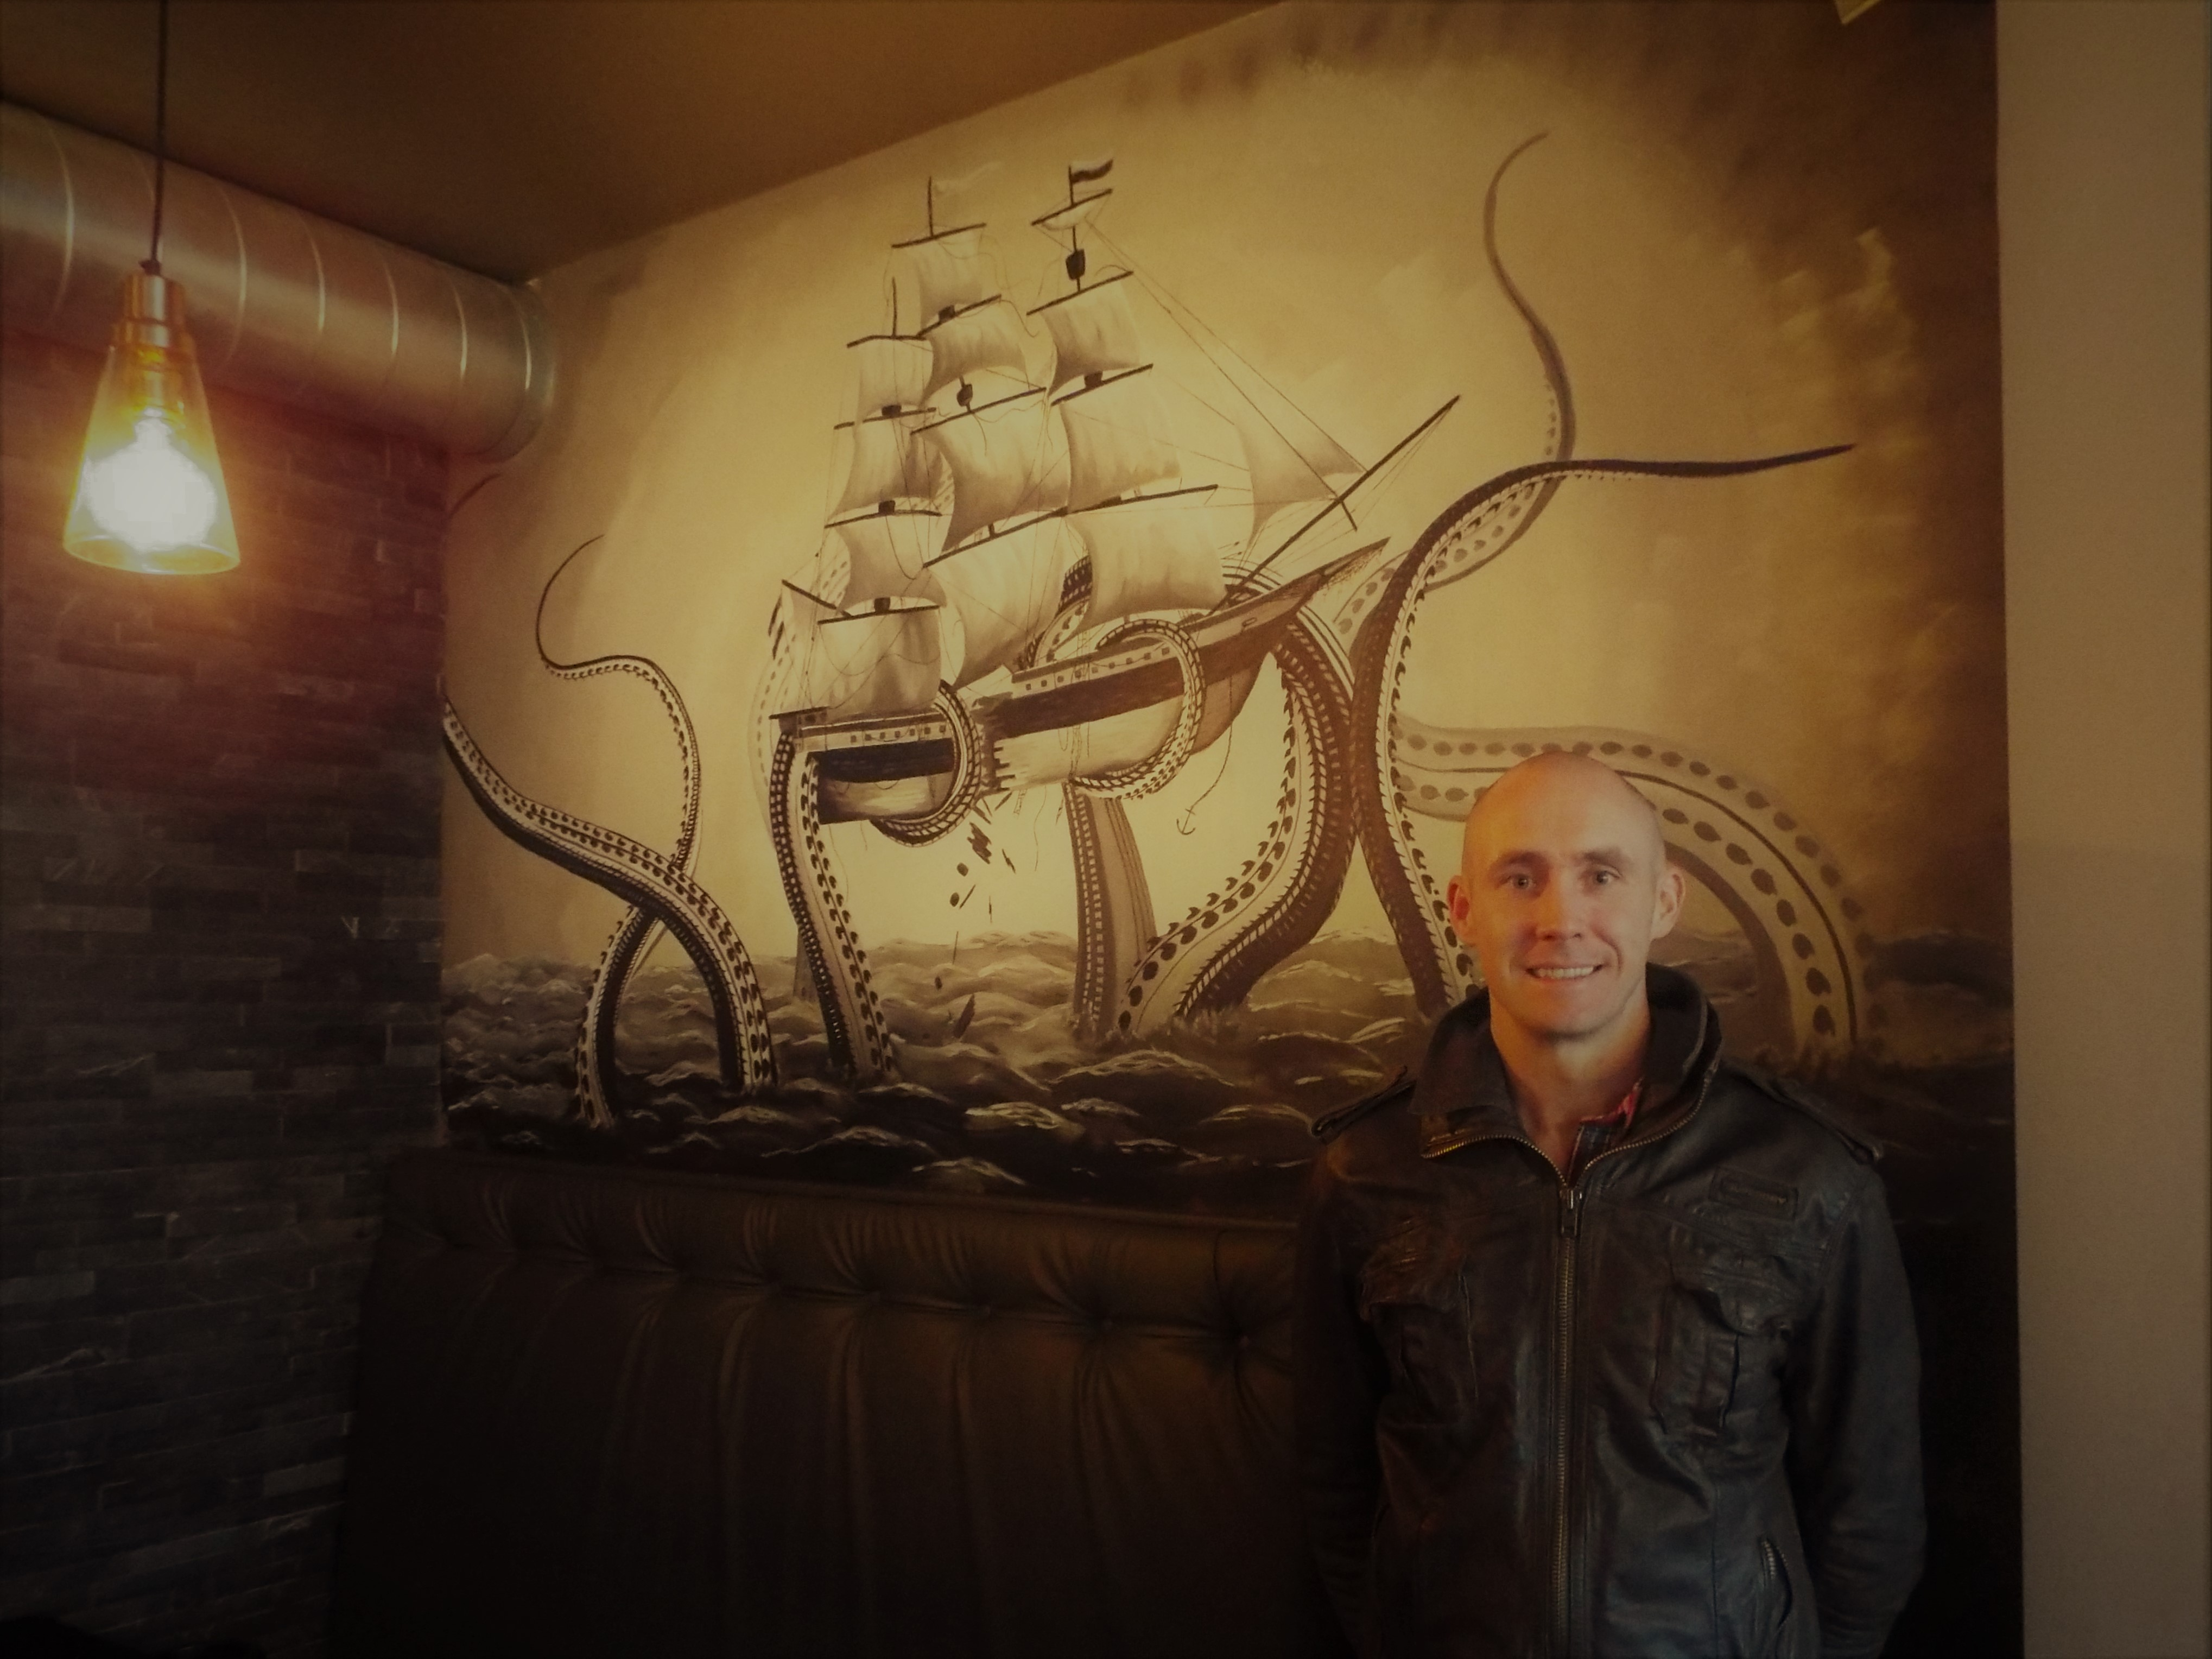 Ship Kraken Attack Mural